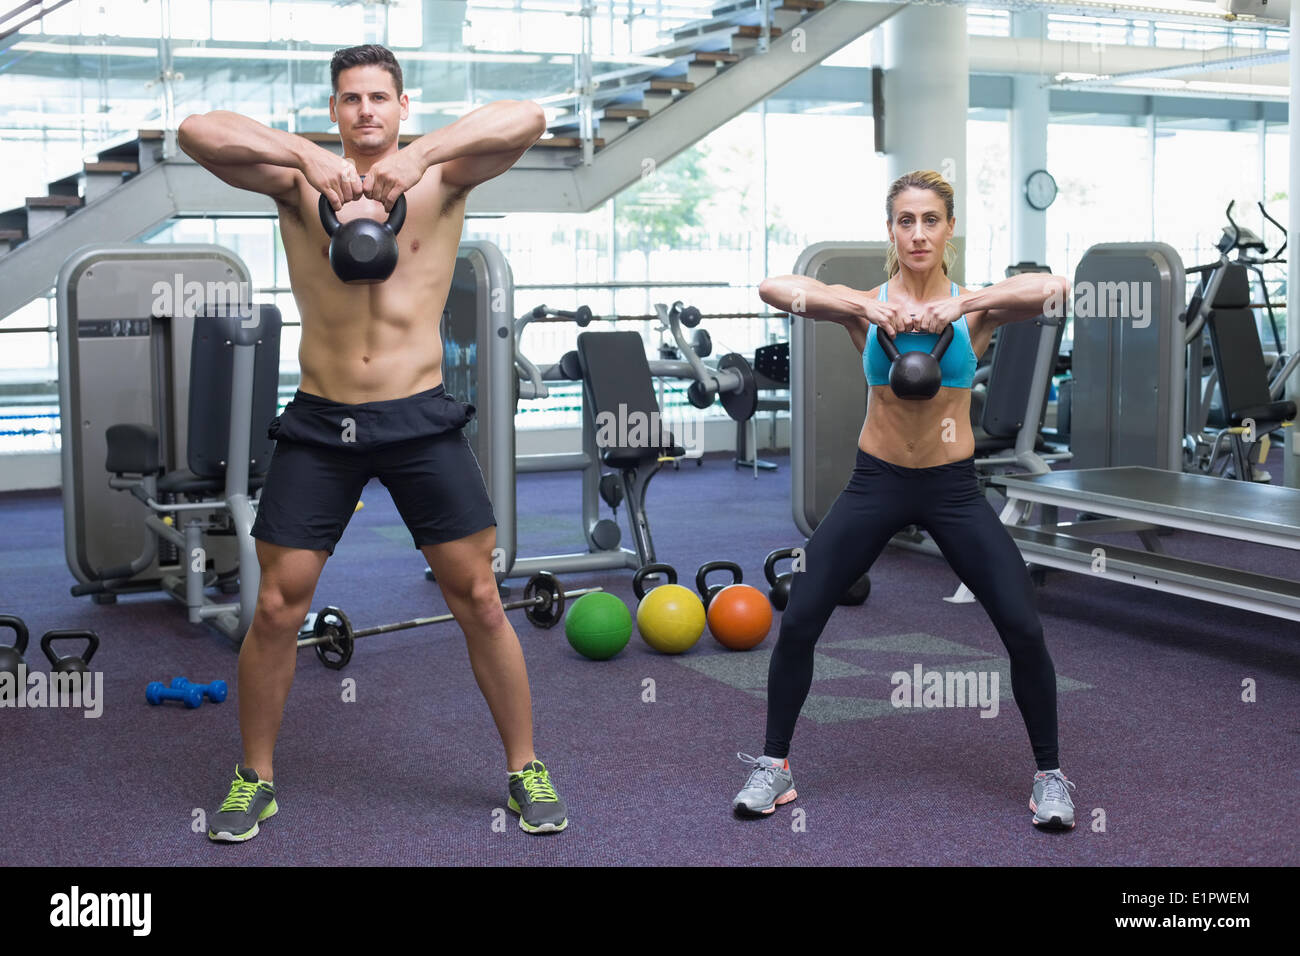 Kettlebell Bodybuilding Bodybuilding Man And Woman Lifting Kettlebells Stock Photo